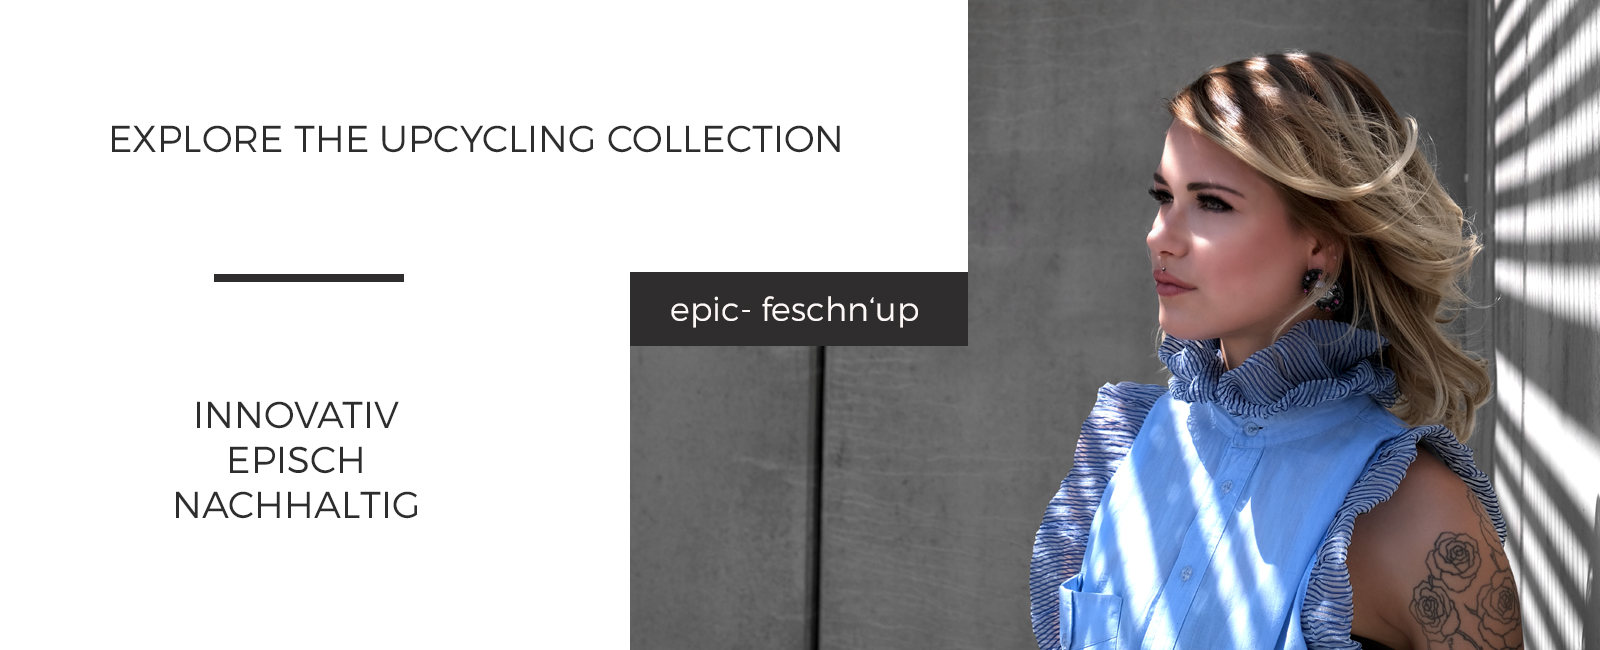 feschn-up epic-couture